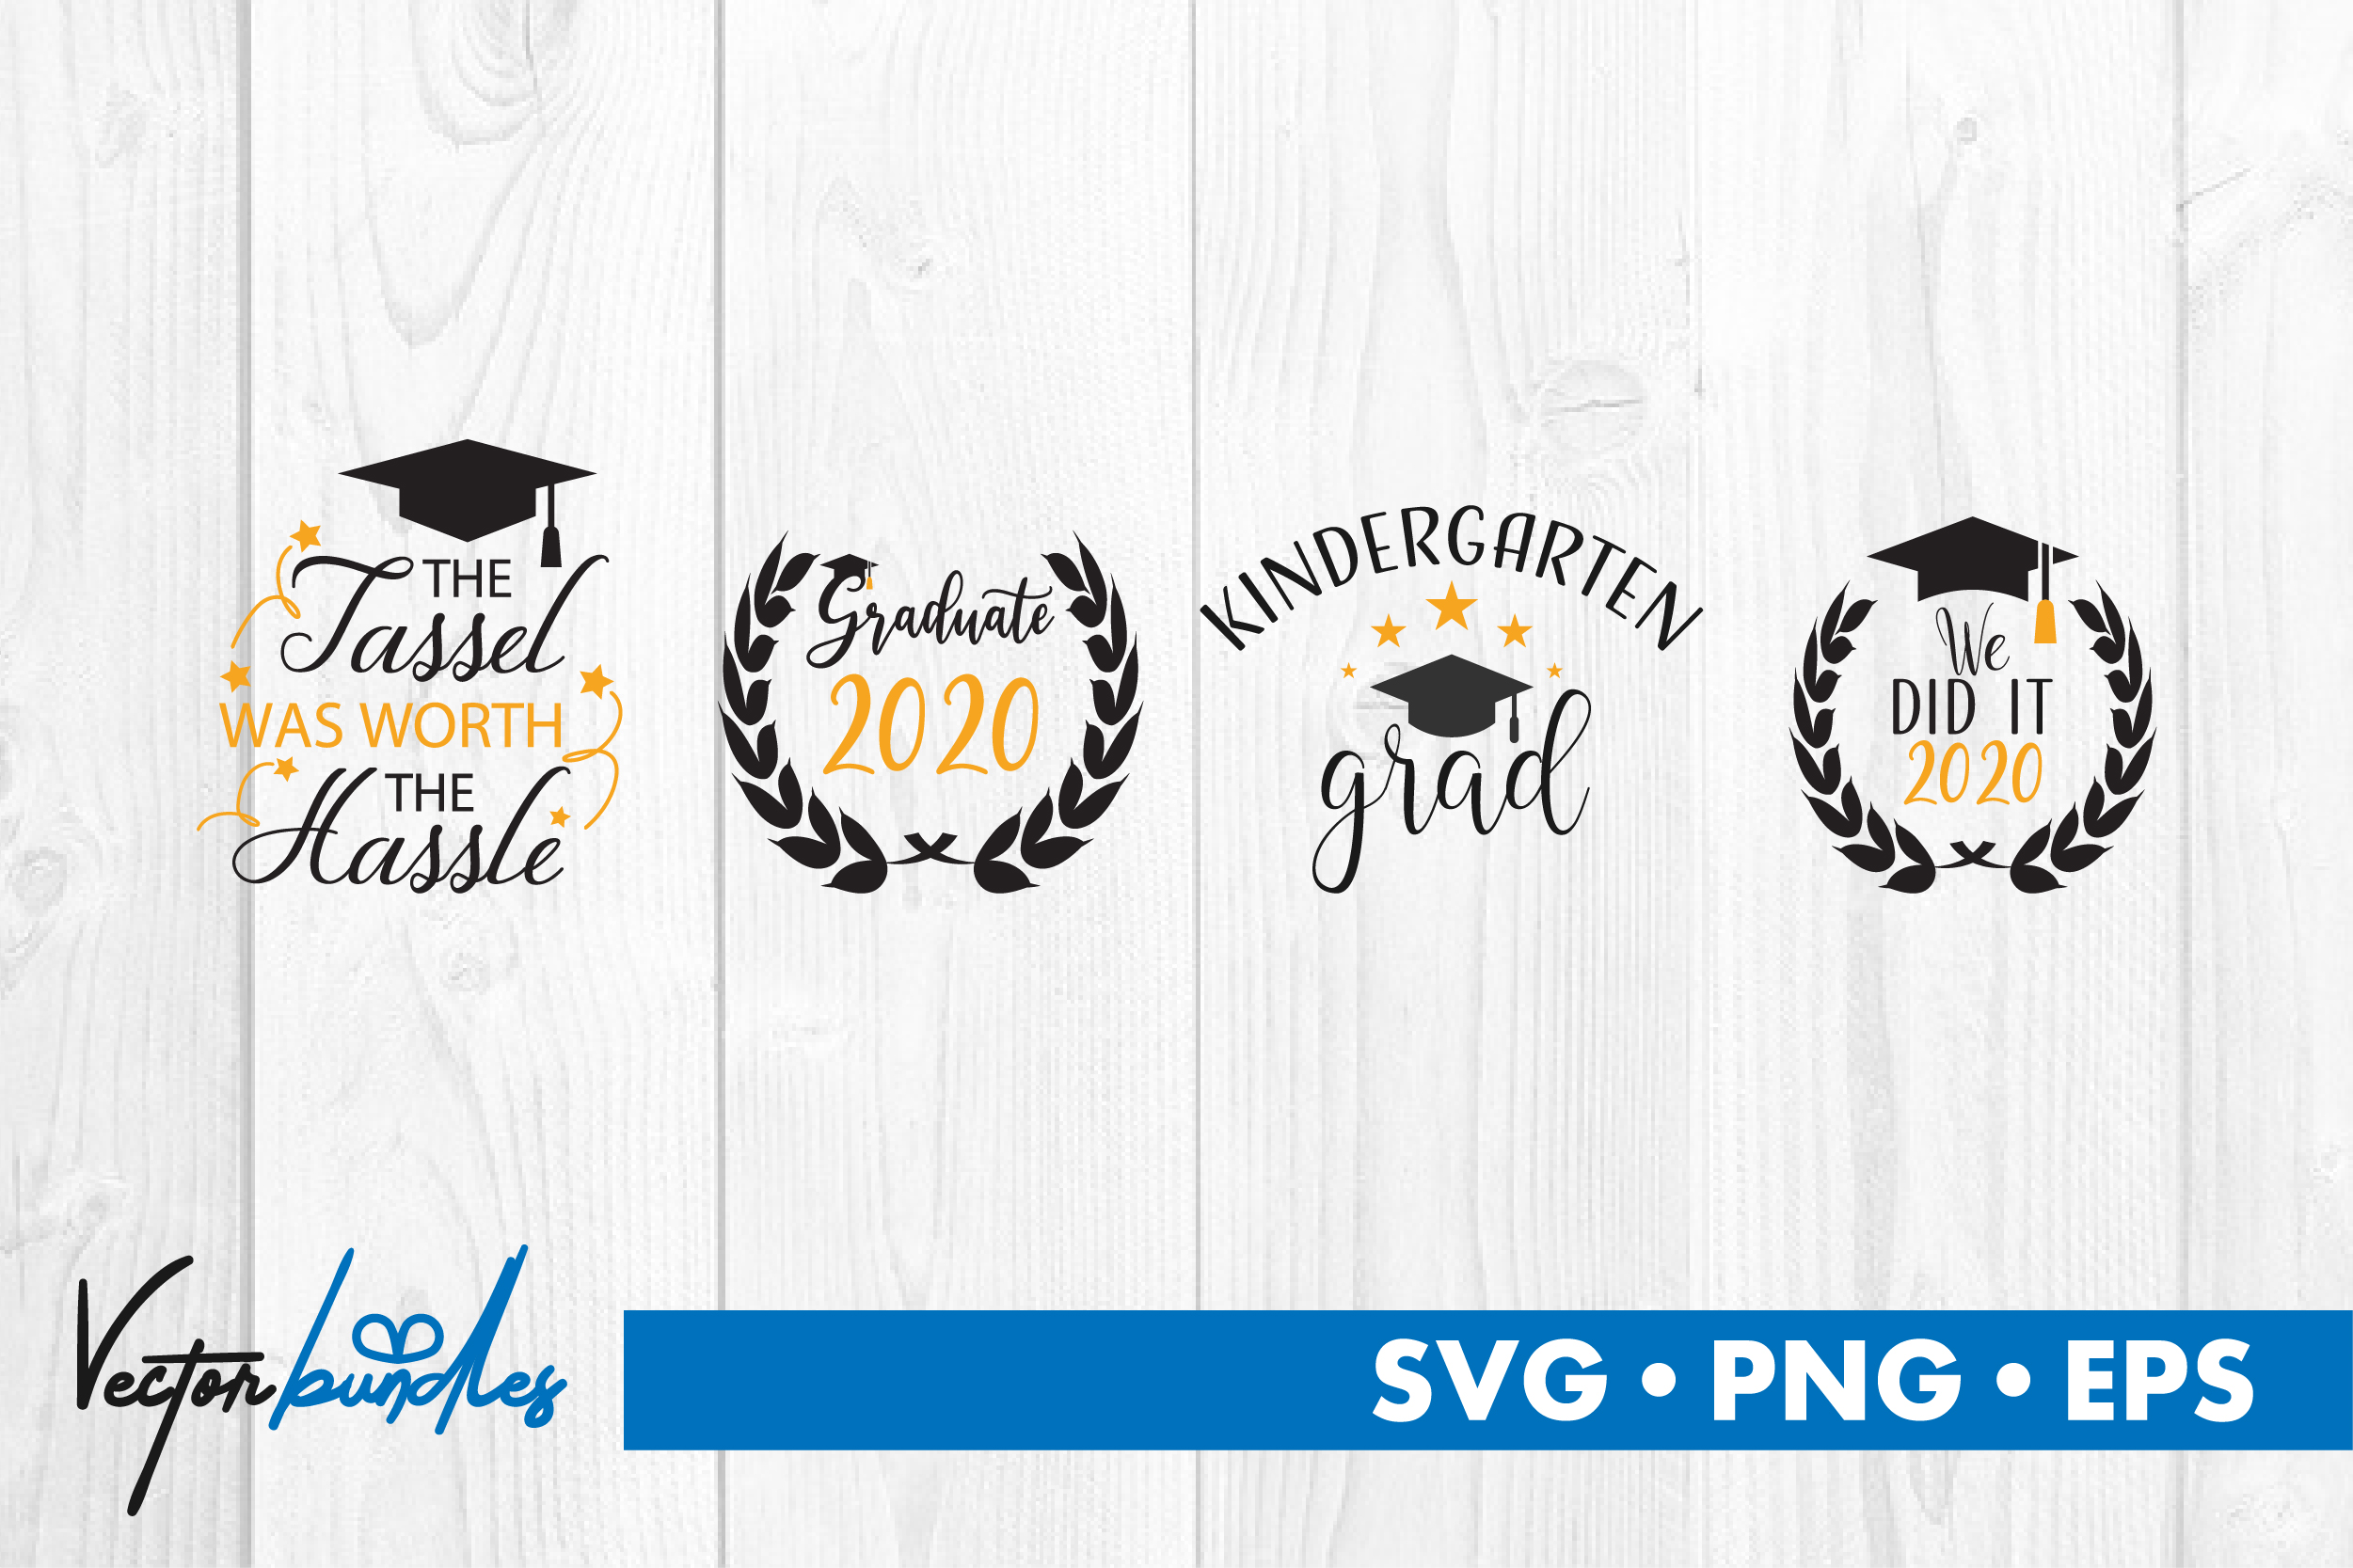 Download Free Graduation Quotes Graphic By Vectorbundles Creative Fabrica for Cricut Explore, Silhouette and other cutting machines.